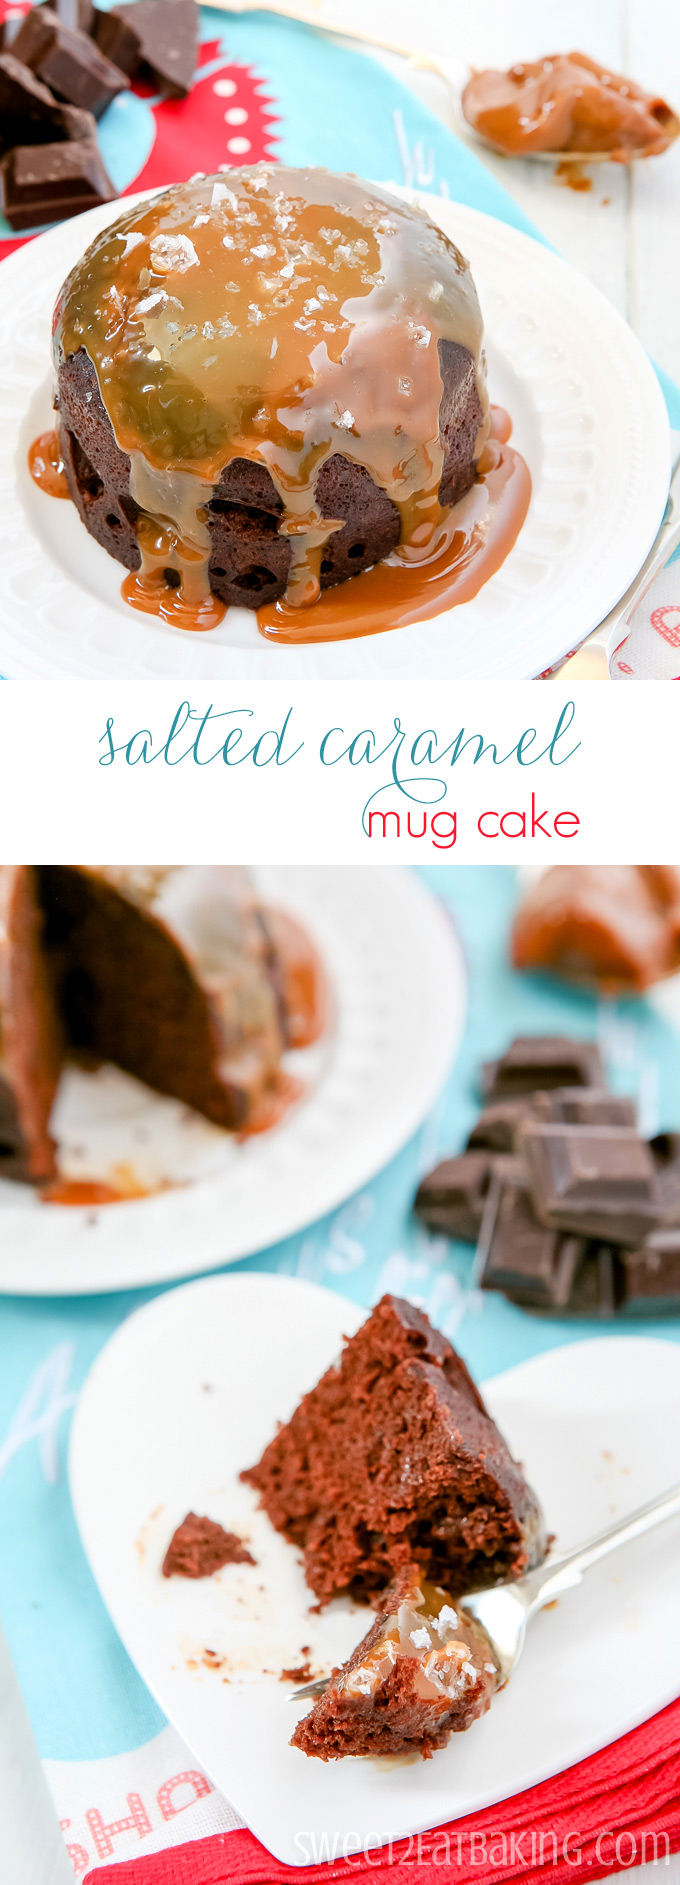 Chocolate Salted Caramel Mug Cake Recipe by Sweet2EatBaking.com